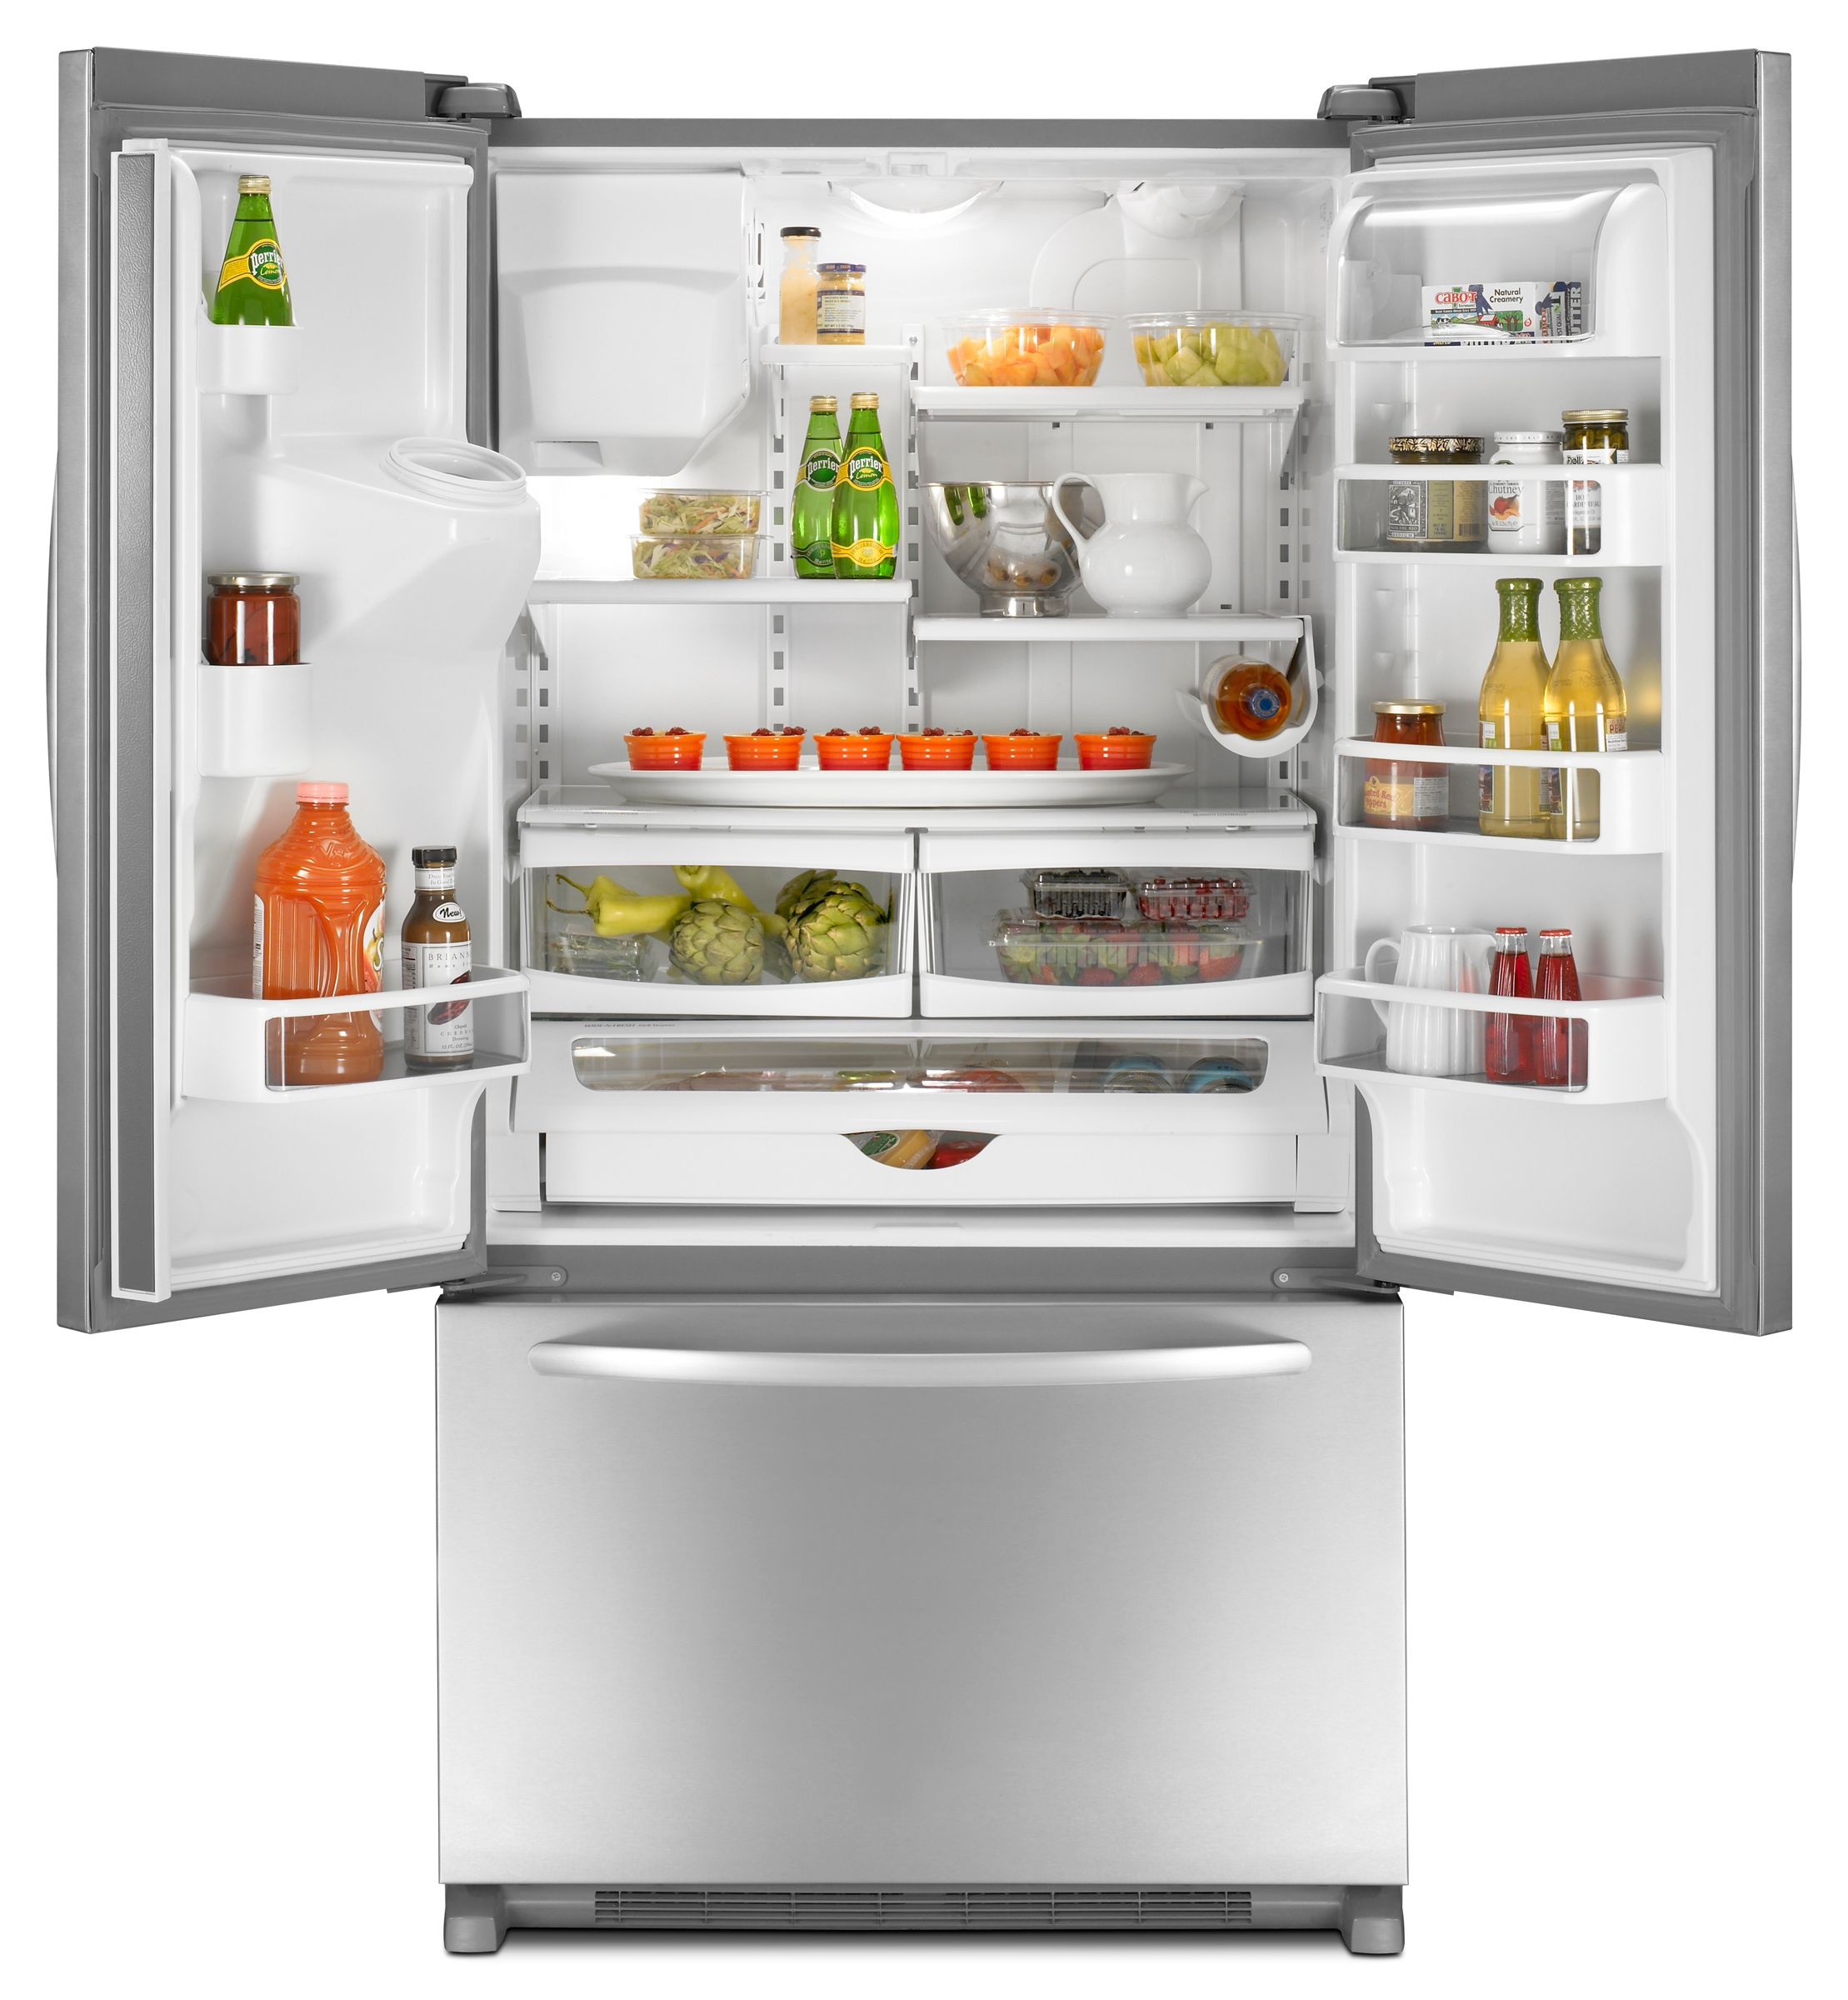 KitchenAid 24.9 cu. ft. Series II French-Door Refrigerator